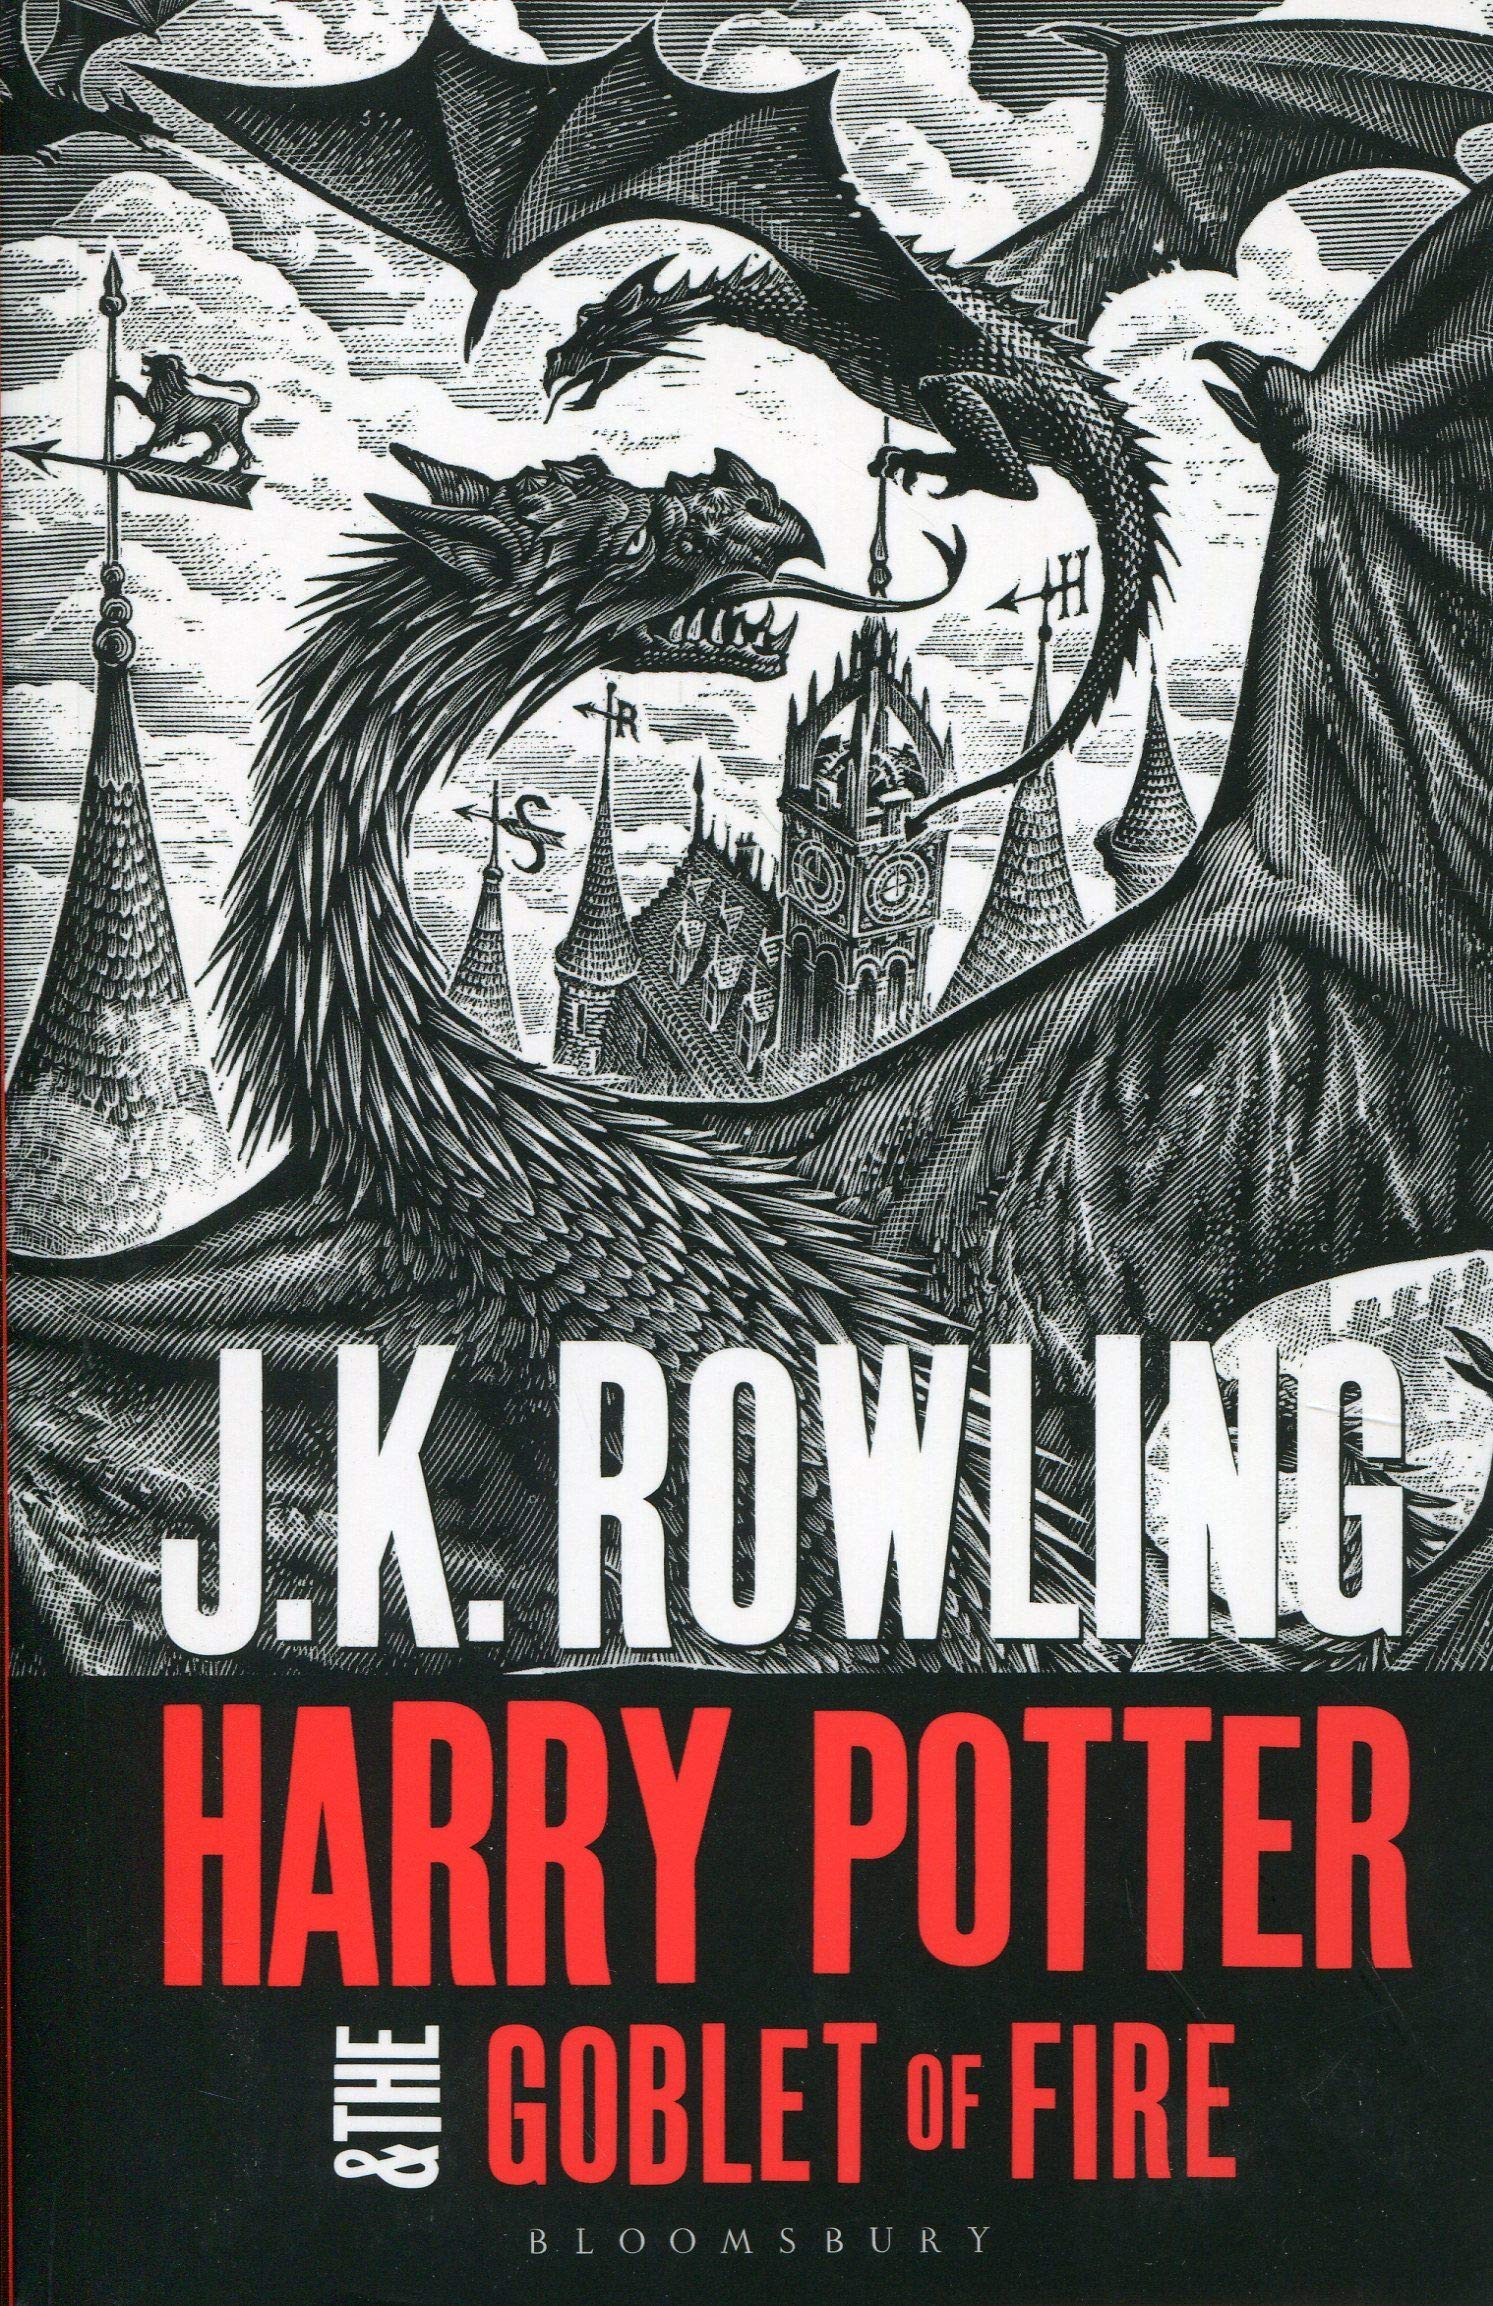 Harry Potter and the Goblet of Fire (English Book)